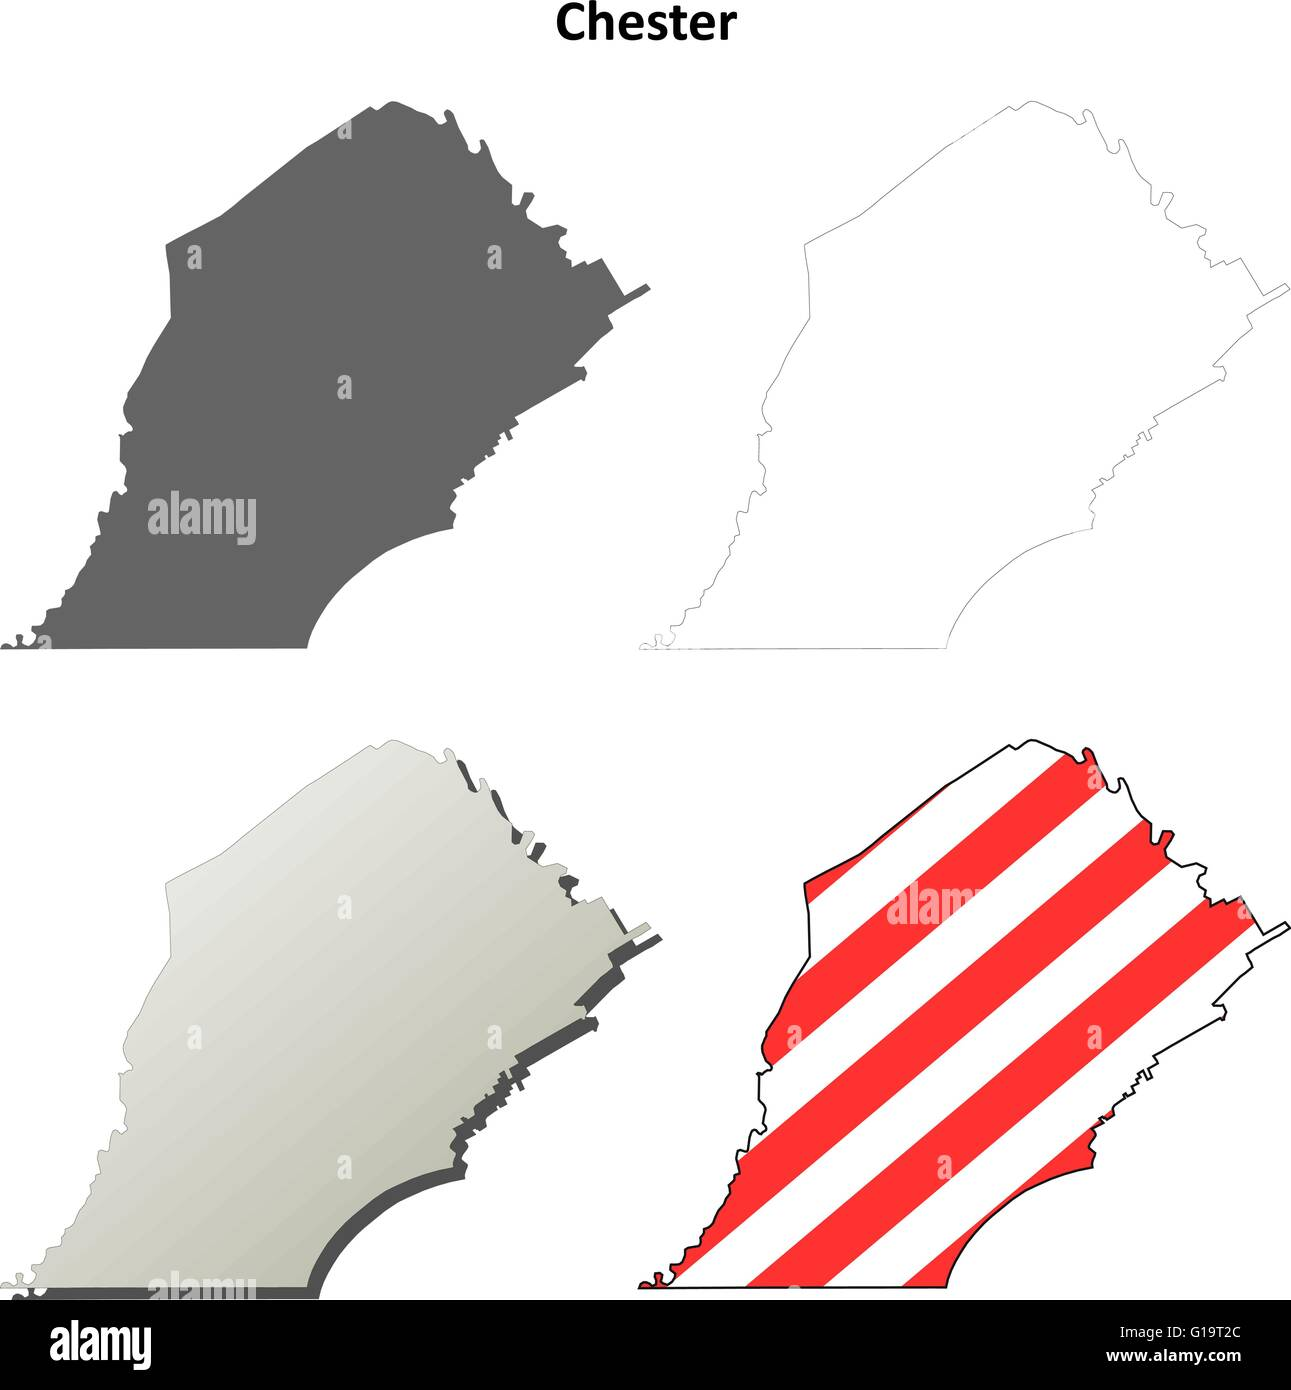 Chester County, Pennsylvania outline map set Stock Vector Art ... on philadelphia county, map of sadsbury township, allegheny county, cumberland county, map of greater philadelphia region, berks county, map pa county, map of chester valley trail, delaware county, map of lititz, franklin county, map of sharon hill, map of haverford college, map of west jersey, battle of brandywine, map of king of prussia area, schuylkill county, map of penn state schuylkill, map of caln township, lancaster county, map of muhlenberg township, adams county, bucks county, map of the philadelphia region, map of west vincent township, map of spring city, fulton county, montgomery county, west chester, york county, map of drexel hill, map of marsh creek state park, map of west goshen, dauphin county, map of arcadia university, map of elkins park,